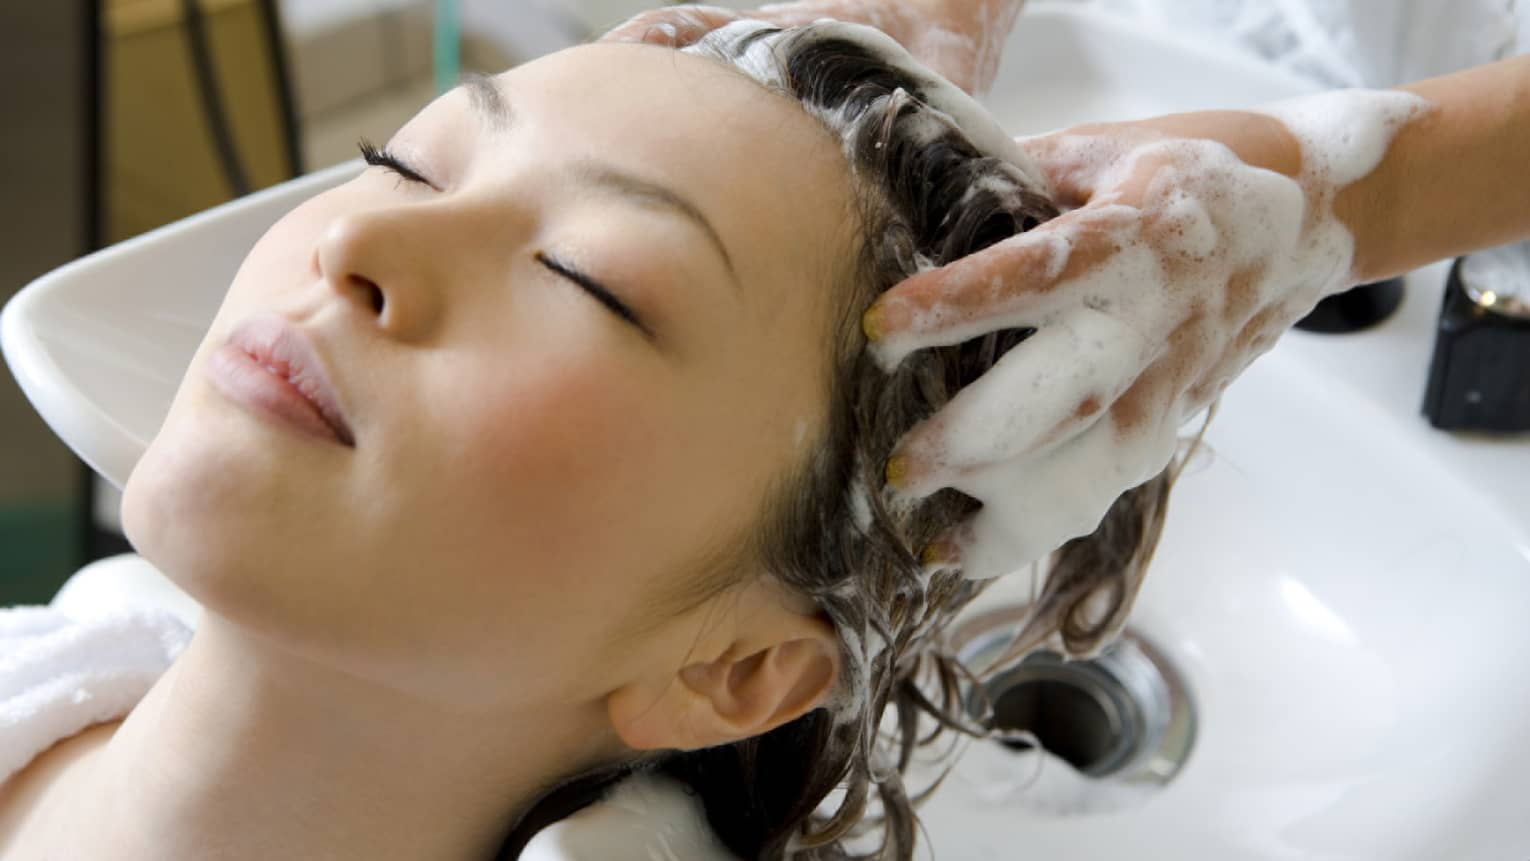 Woman closes eyes and leans back against sink as hands massage shampoo into her scalp